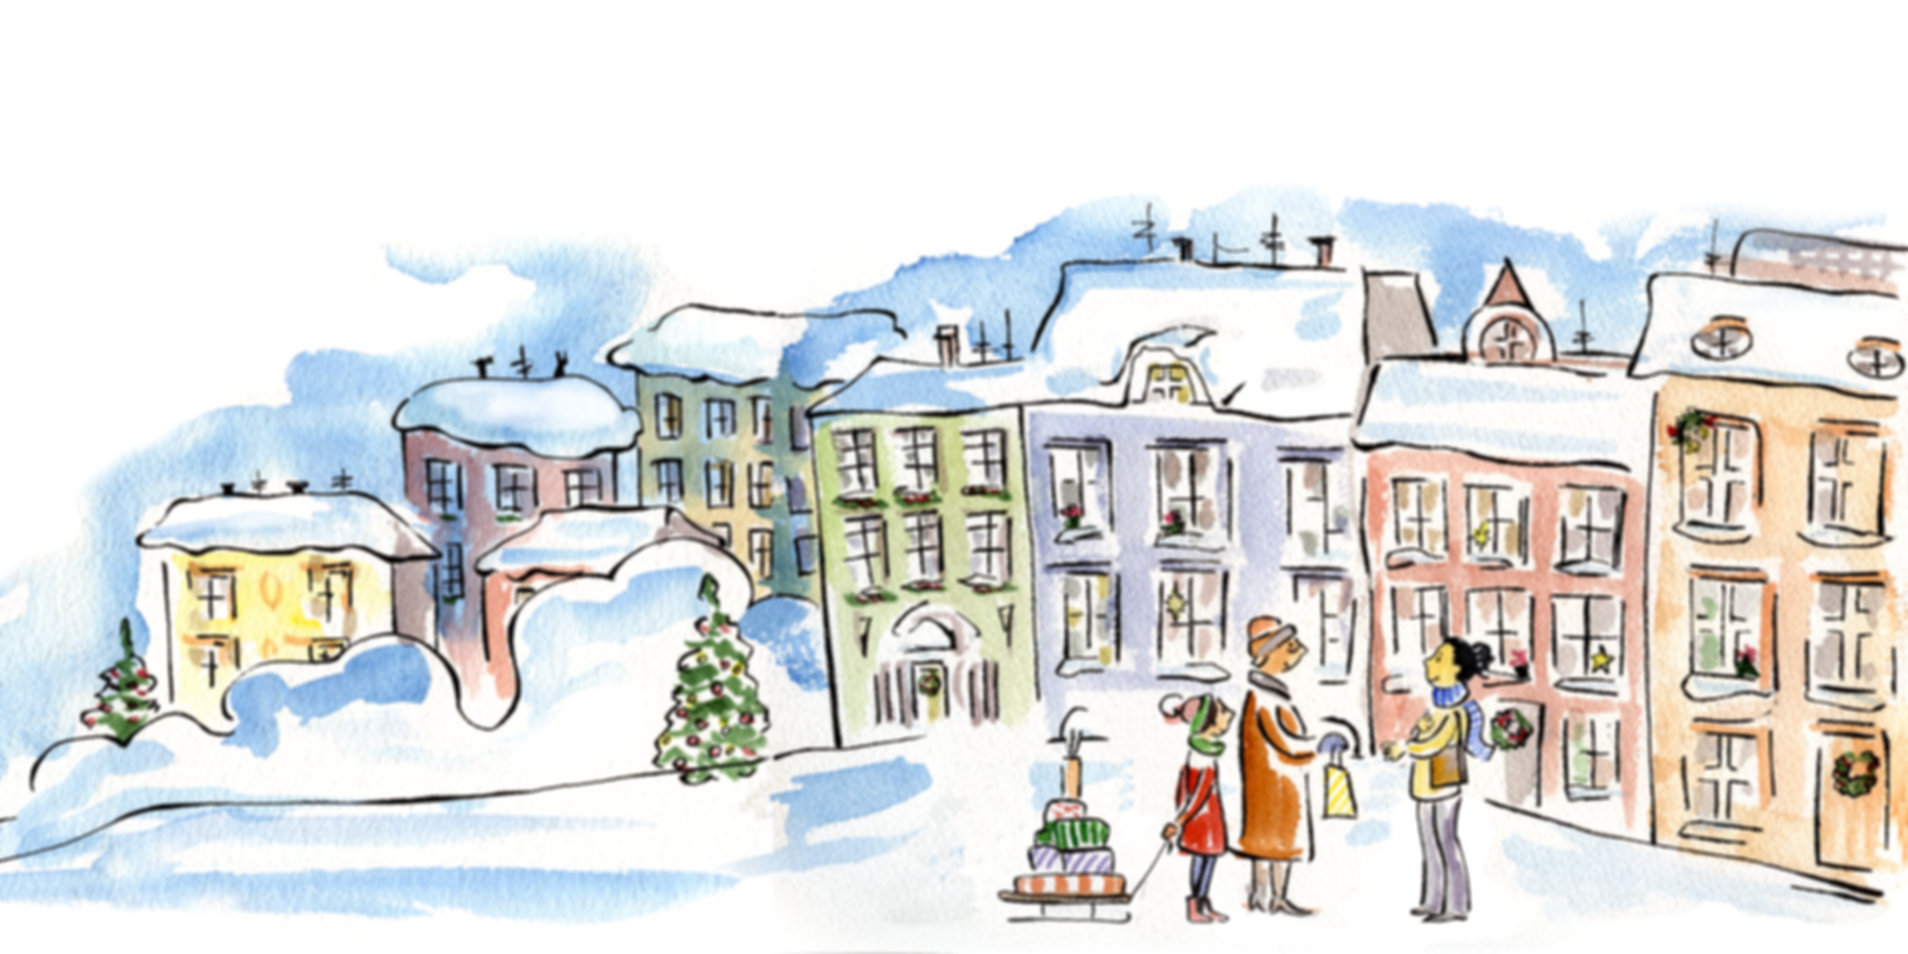 Street scene from Lulu and Lainey ... 12 Days of Christmas